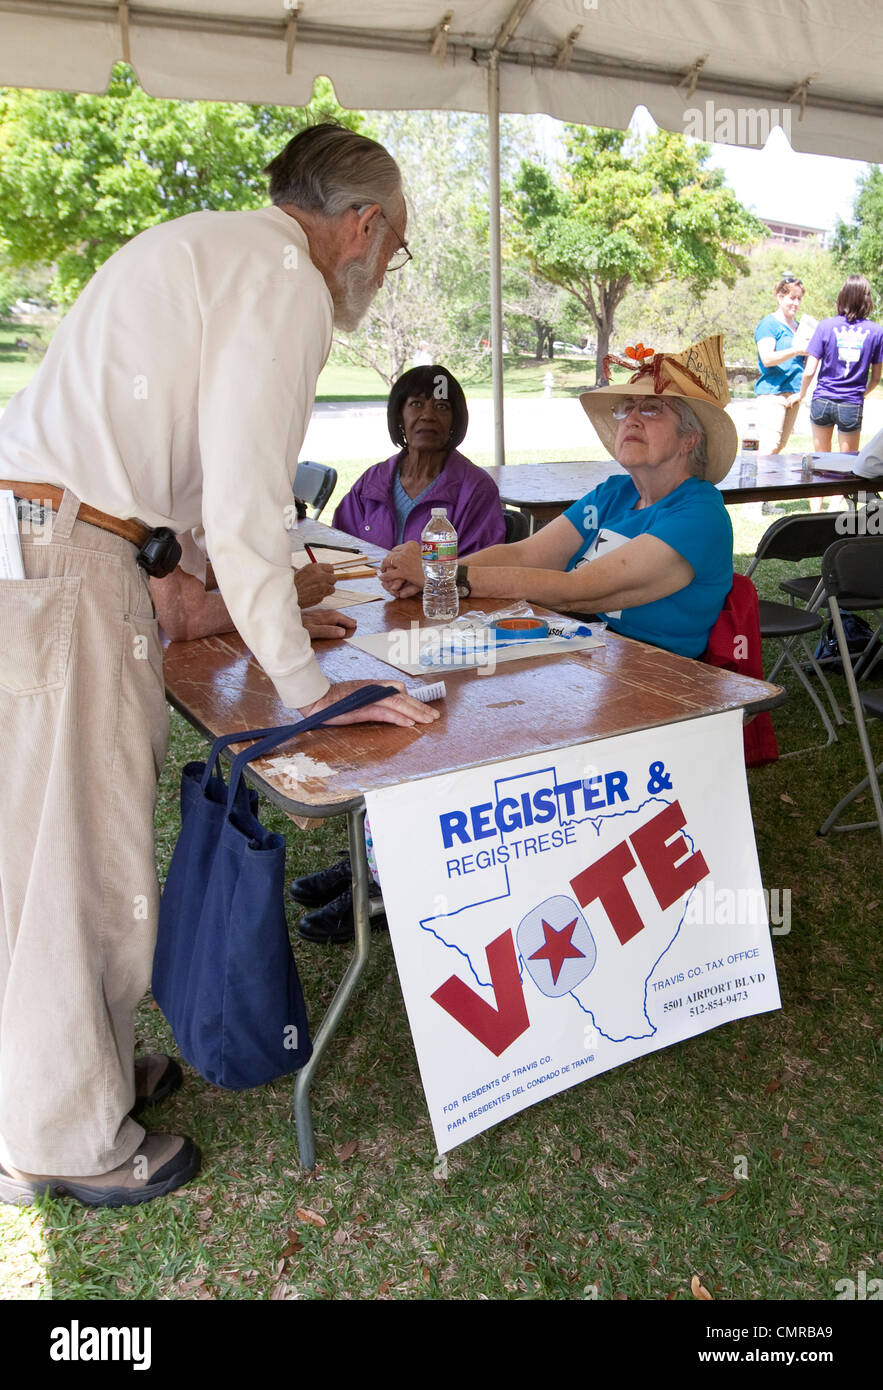 Female worker tends to a voter registration table trying to lure potential voters to sign up including senior citizens - Stock Image